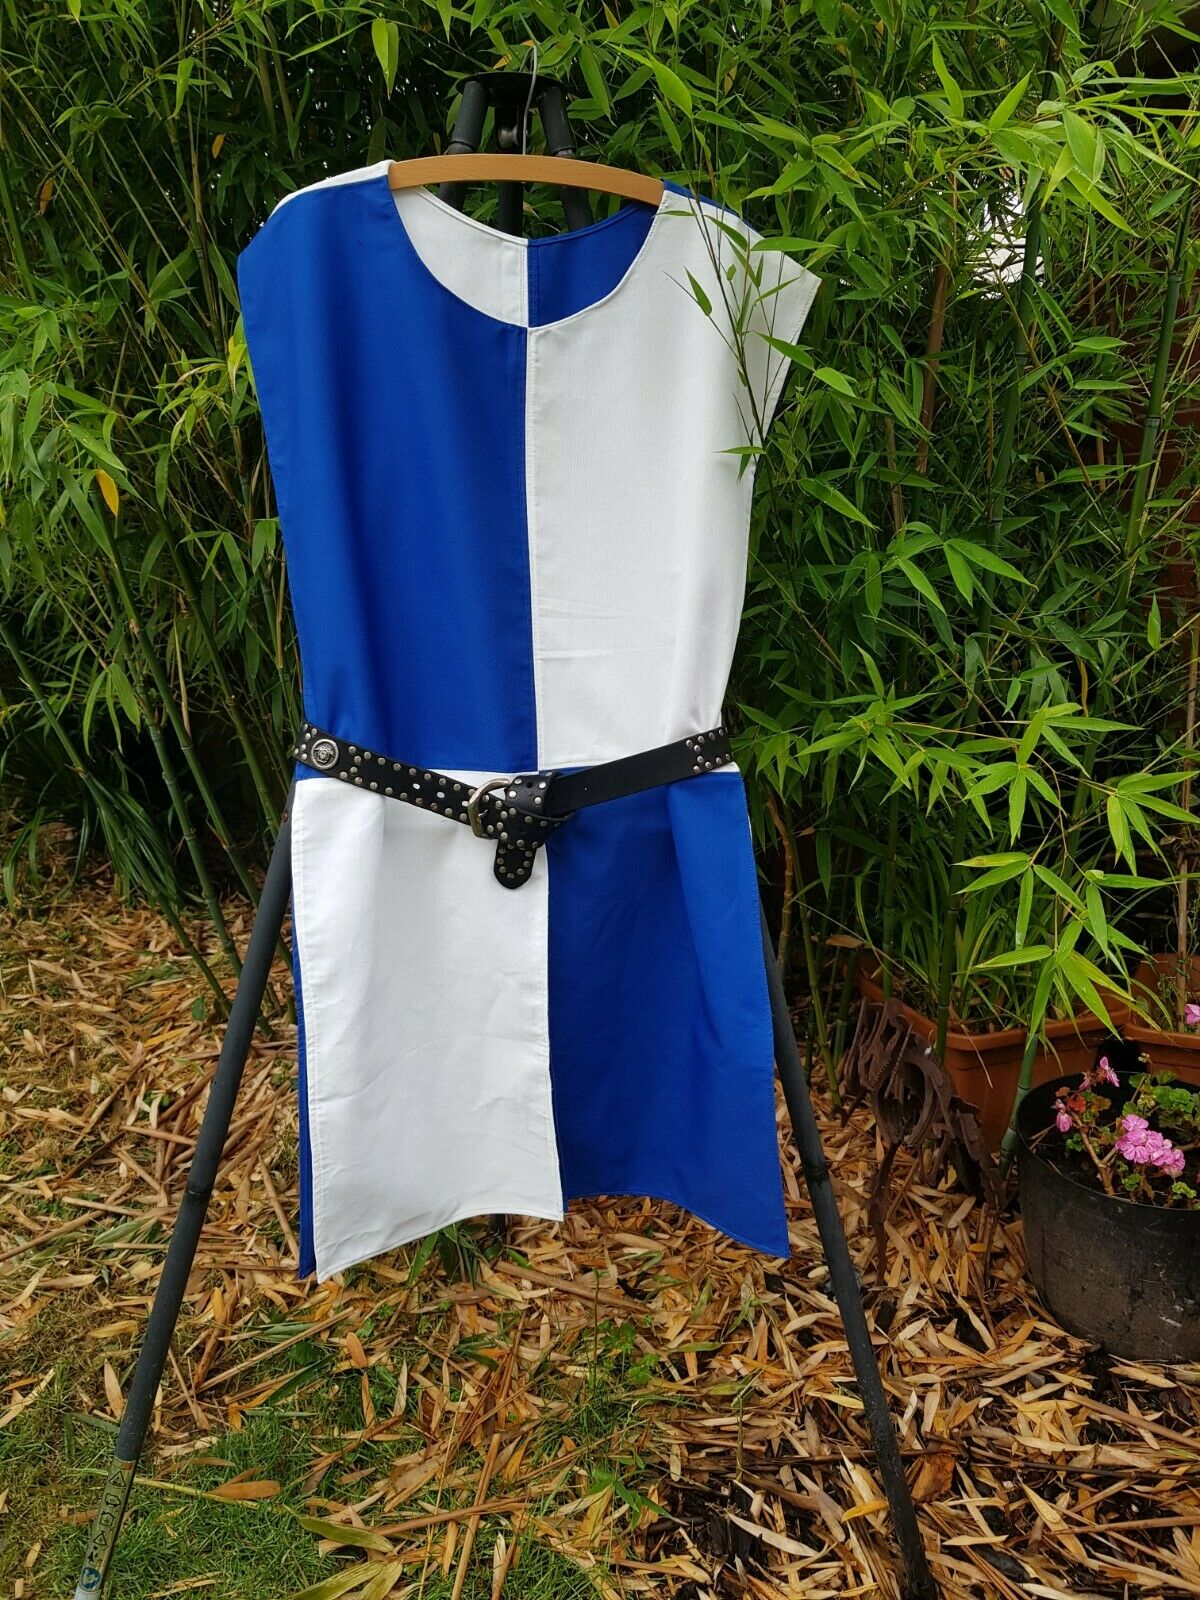 Medieval Knights Tabard/Surcoat - Re-enactment,Cosplay,Costume,Theatre